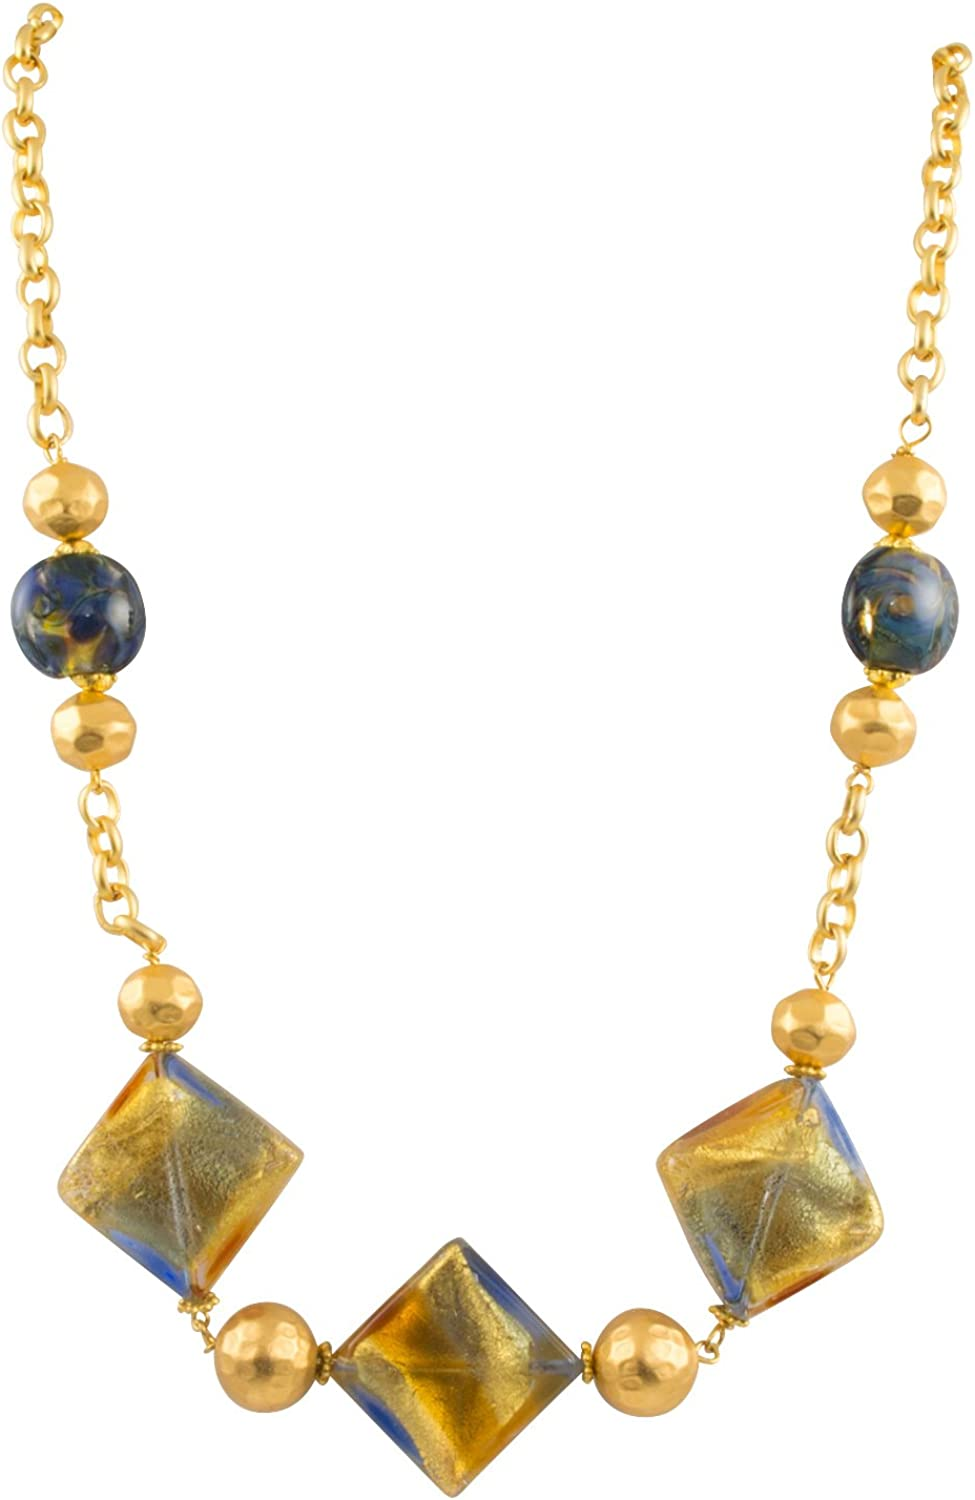 Just Give Me Jewels 18K Gold Plated Fused Murano Square Bead Collar Necklace